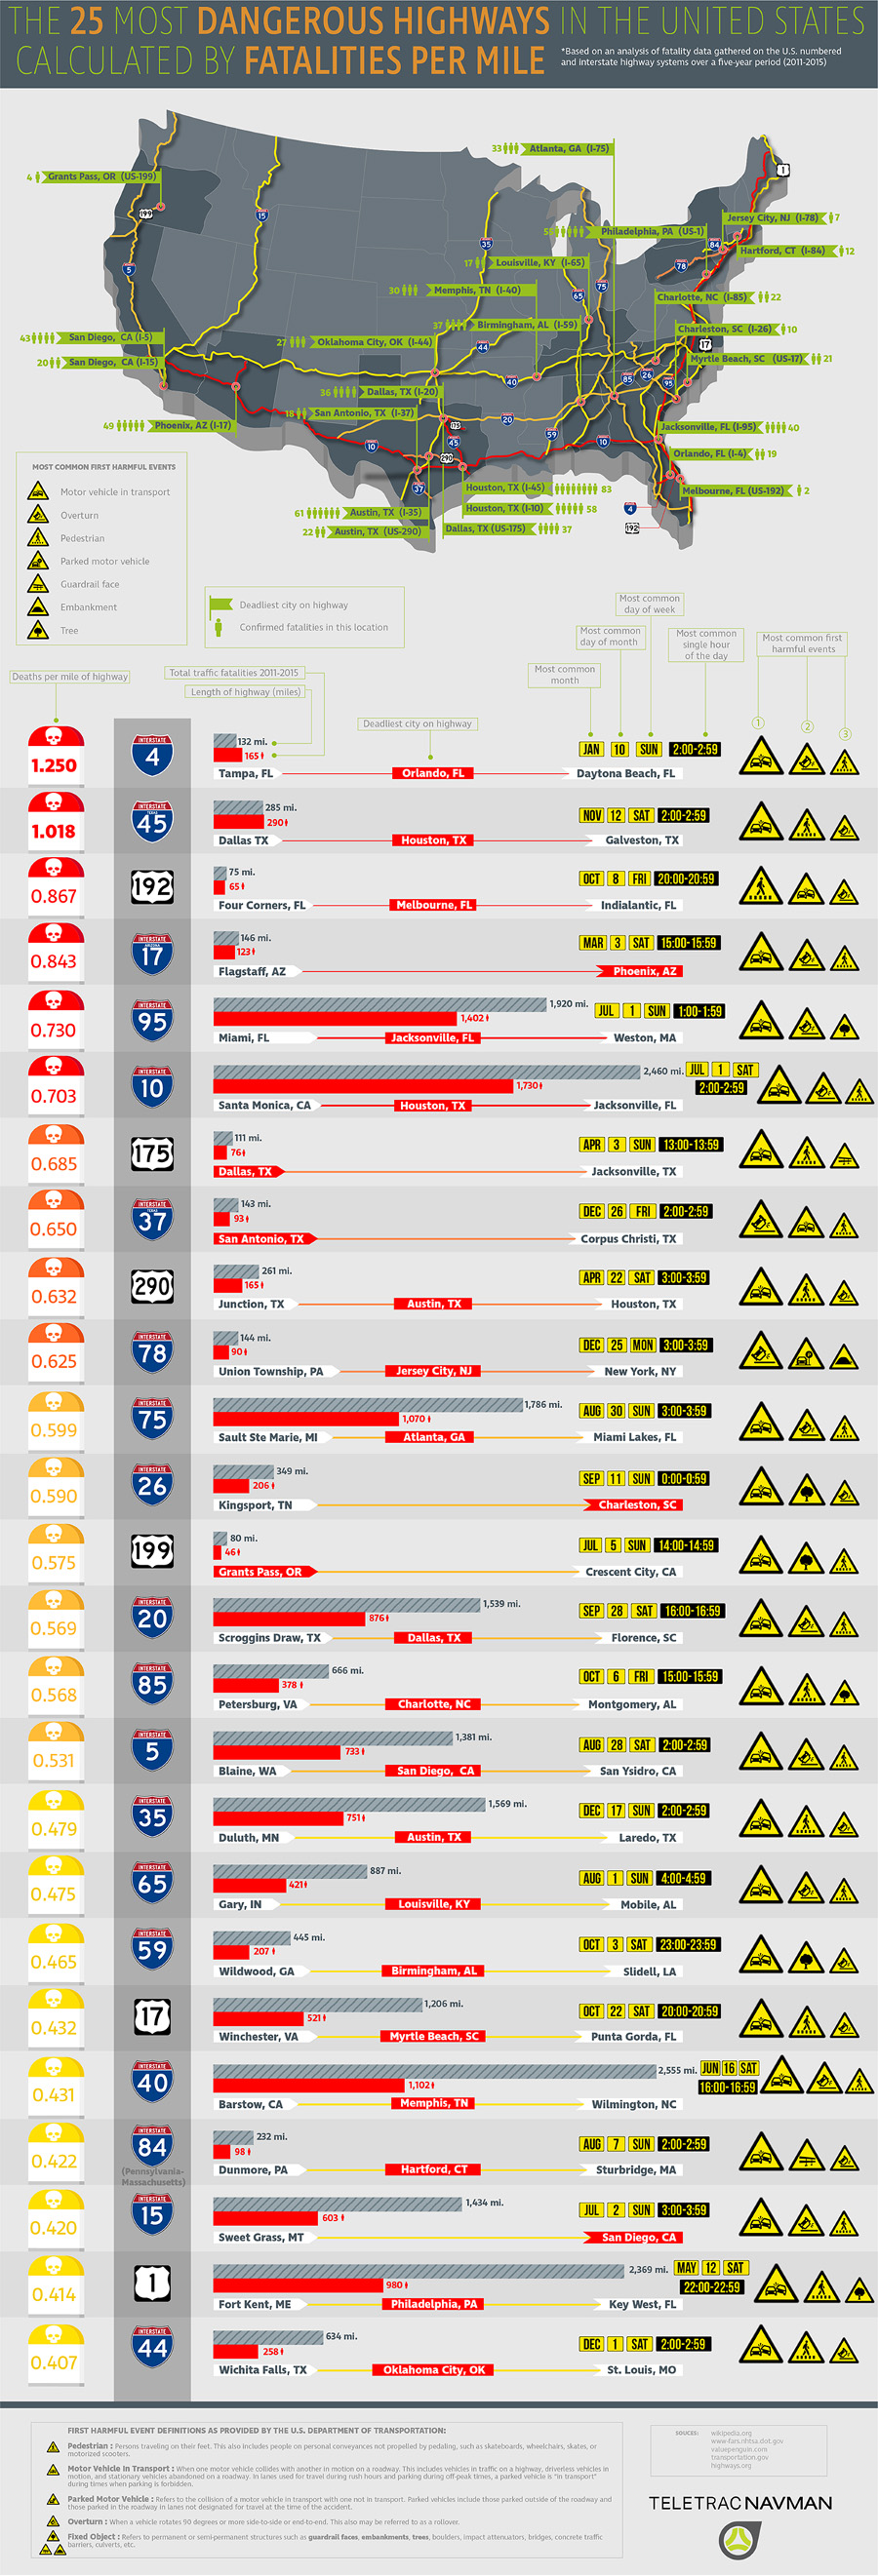 The 25 Most Dangerous Highways in the United States